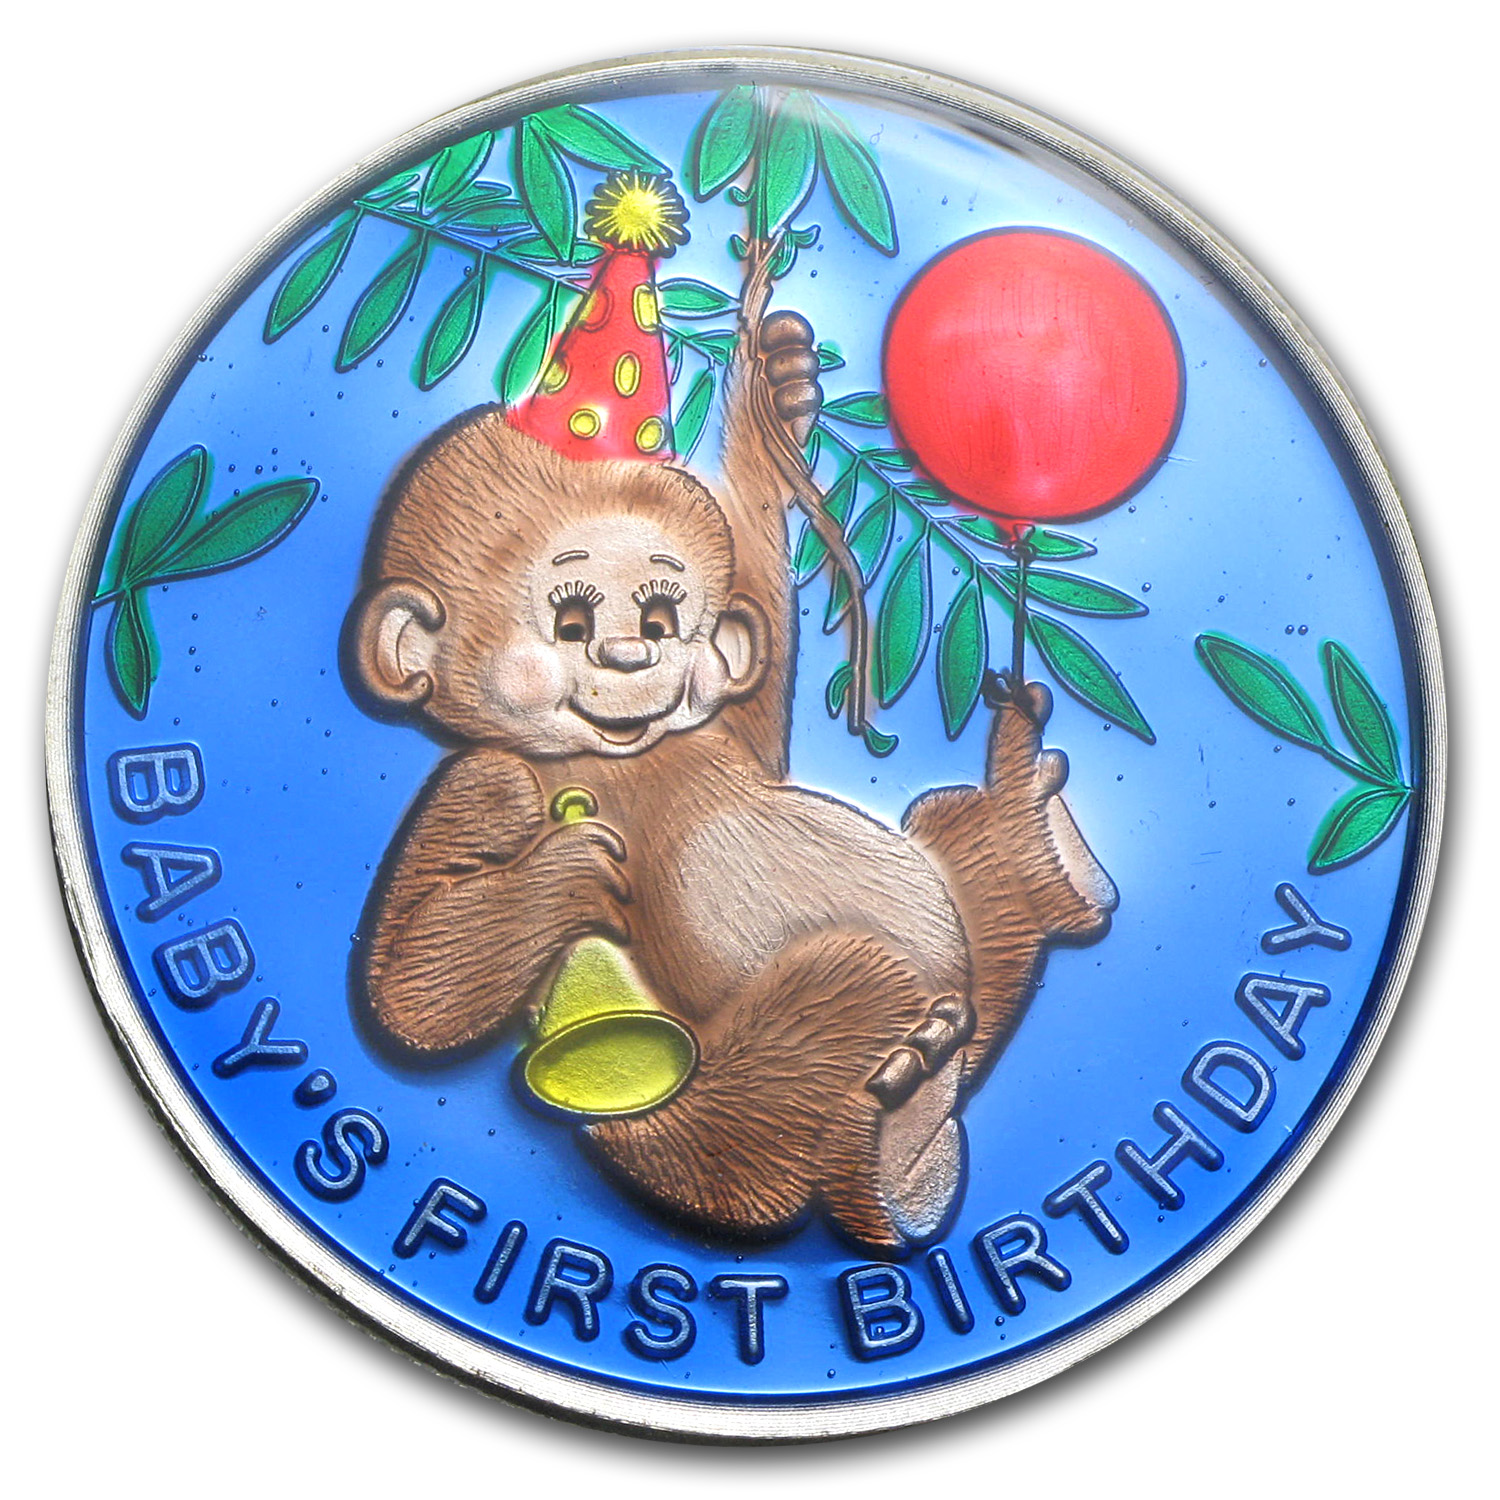 1 oz Silver Round - Baby's First Birthday (Enameled, w/Box & Cap)